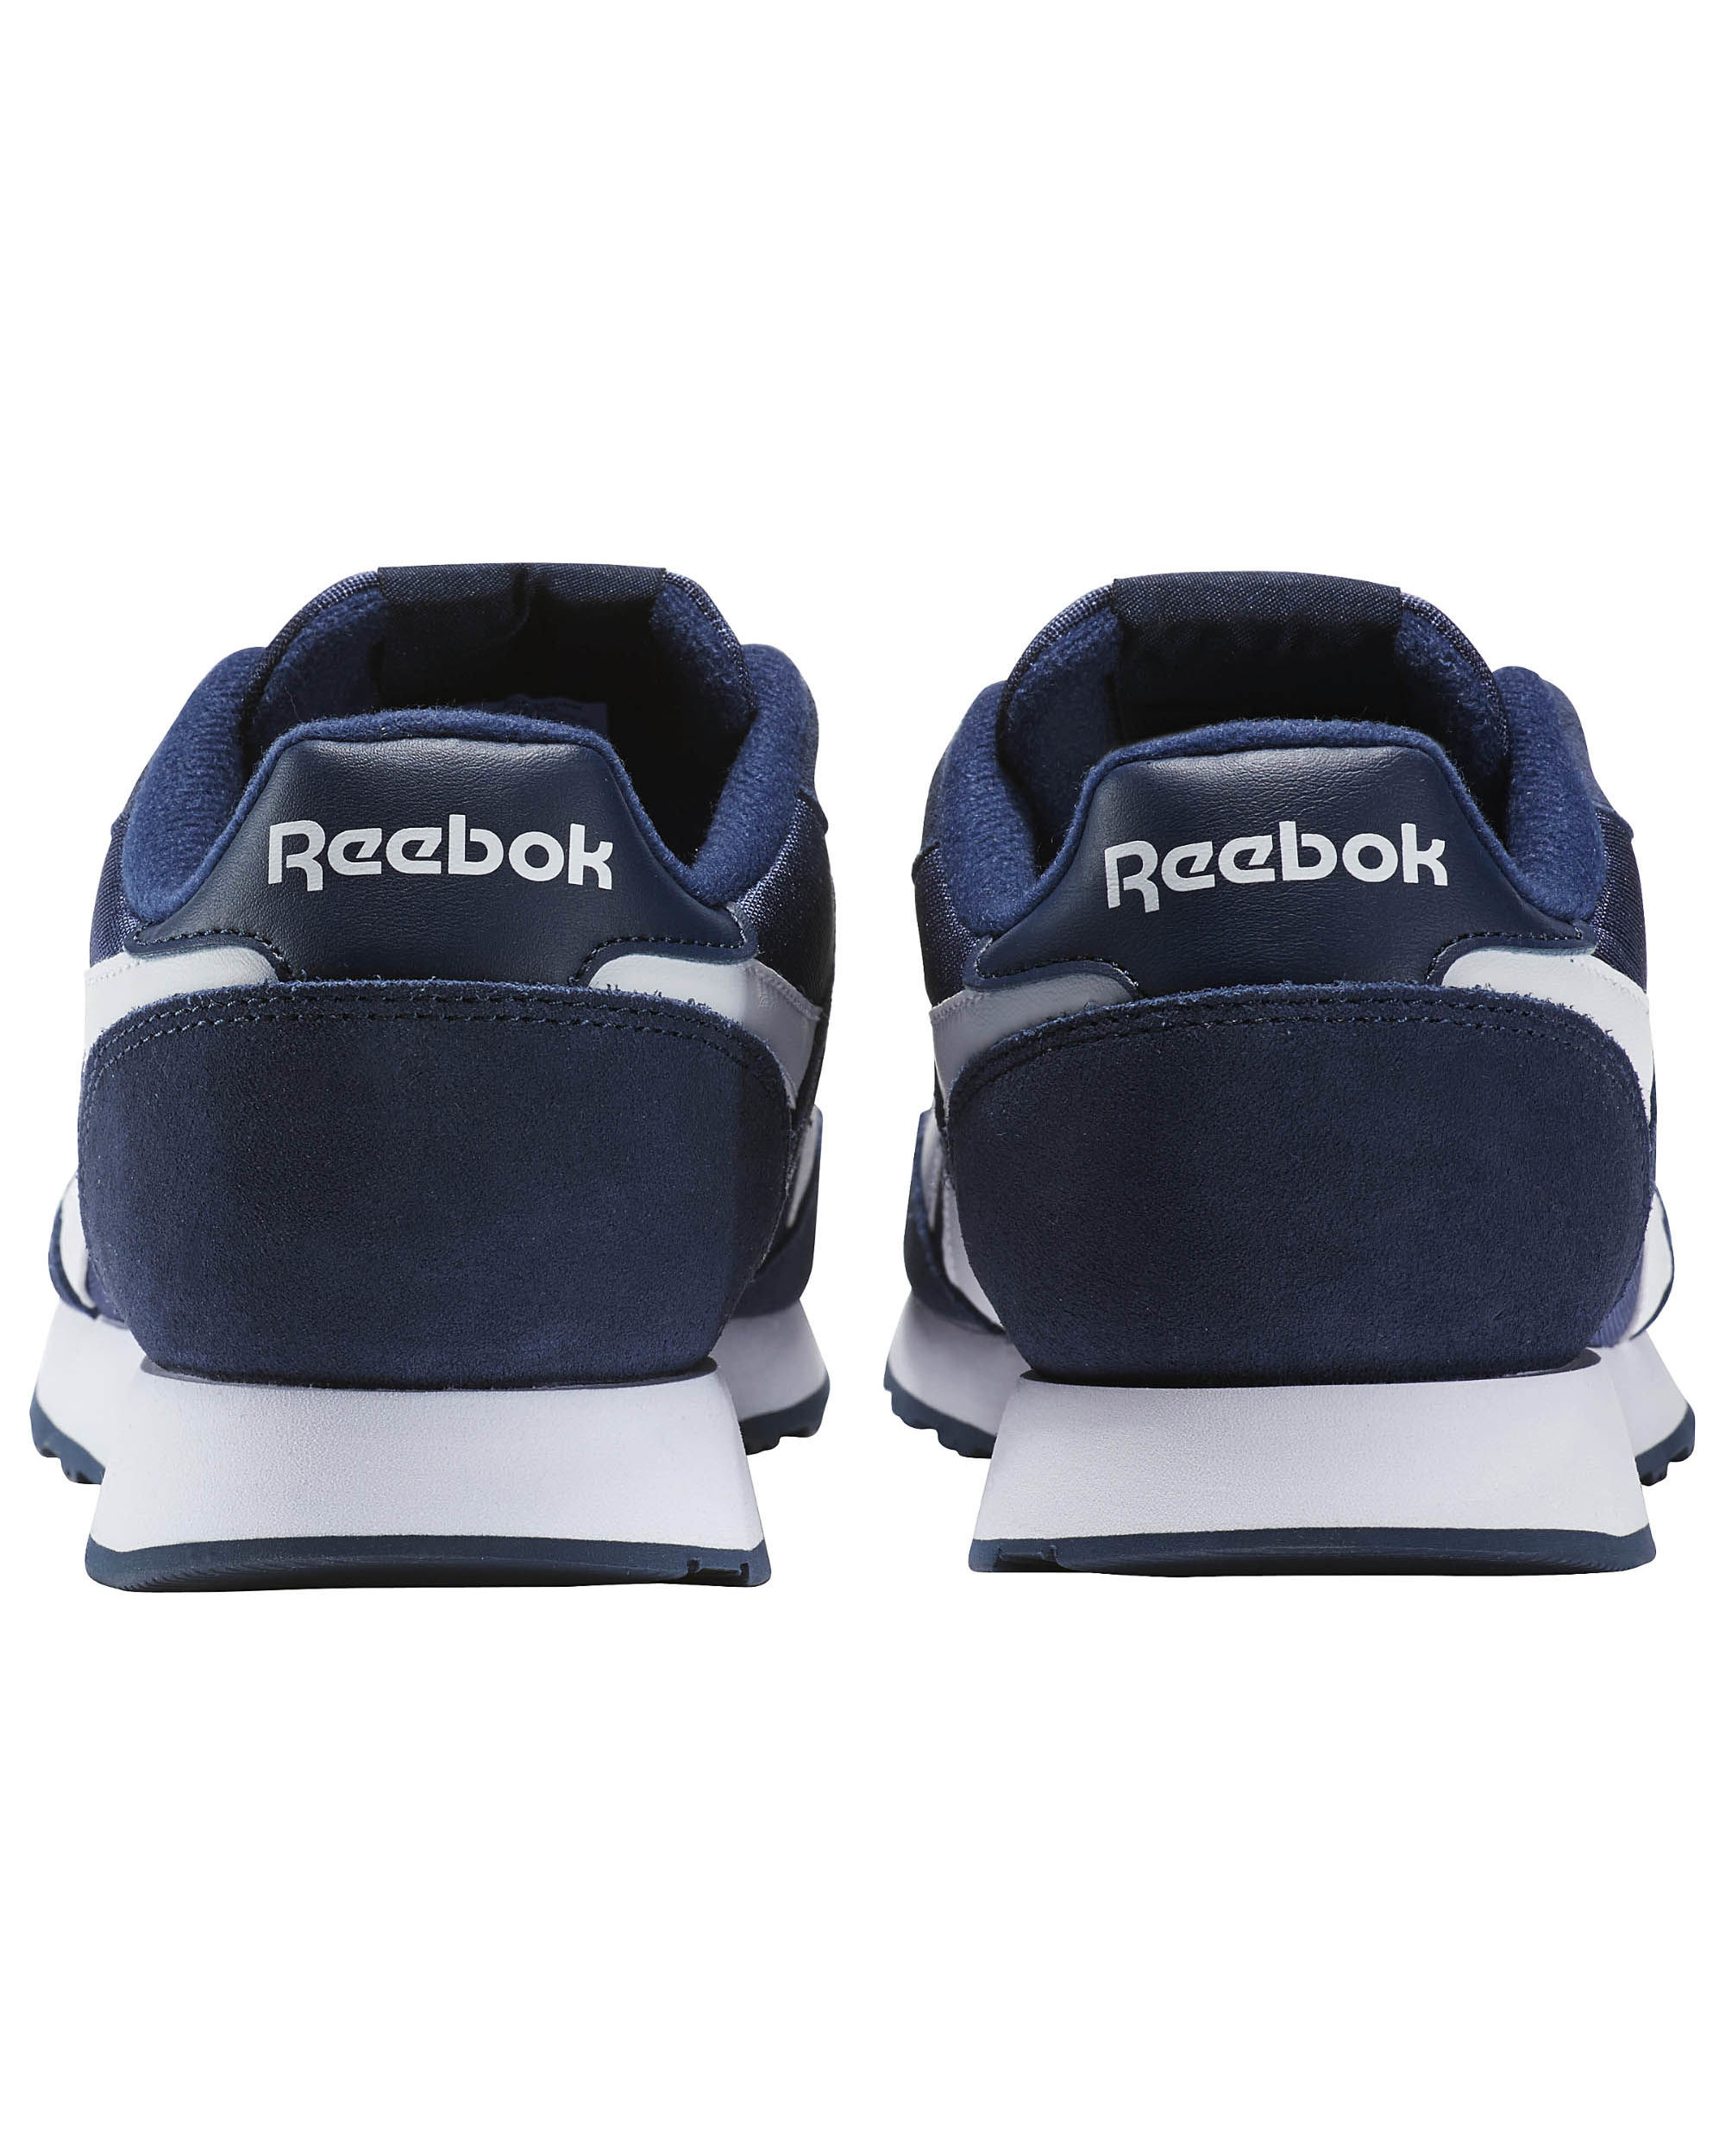 6fffd4ec709ae5 Reebok Sneakers Shoes Trainers Boots Schuhe Sport LifeStyle ...